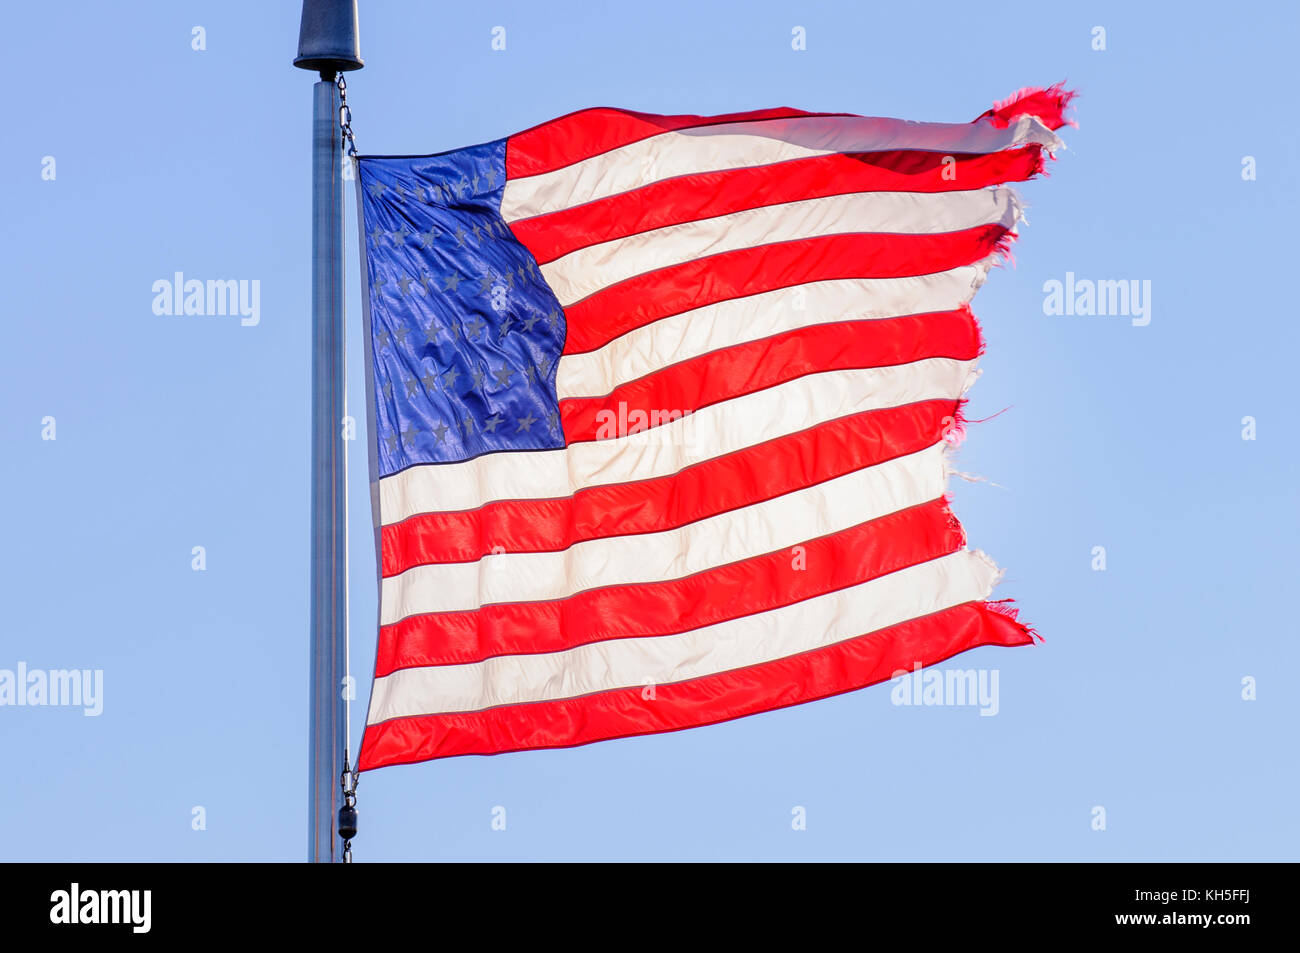 Tattered American flag blowing in the wind - Stock Image